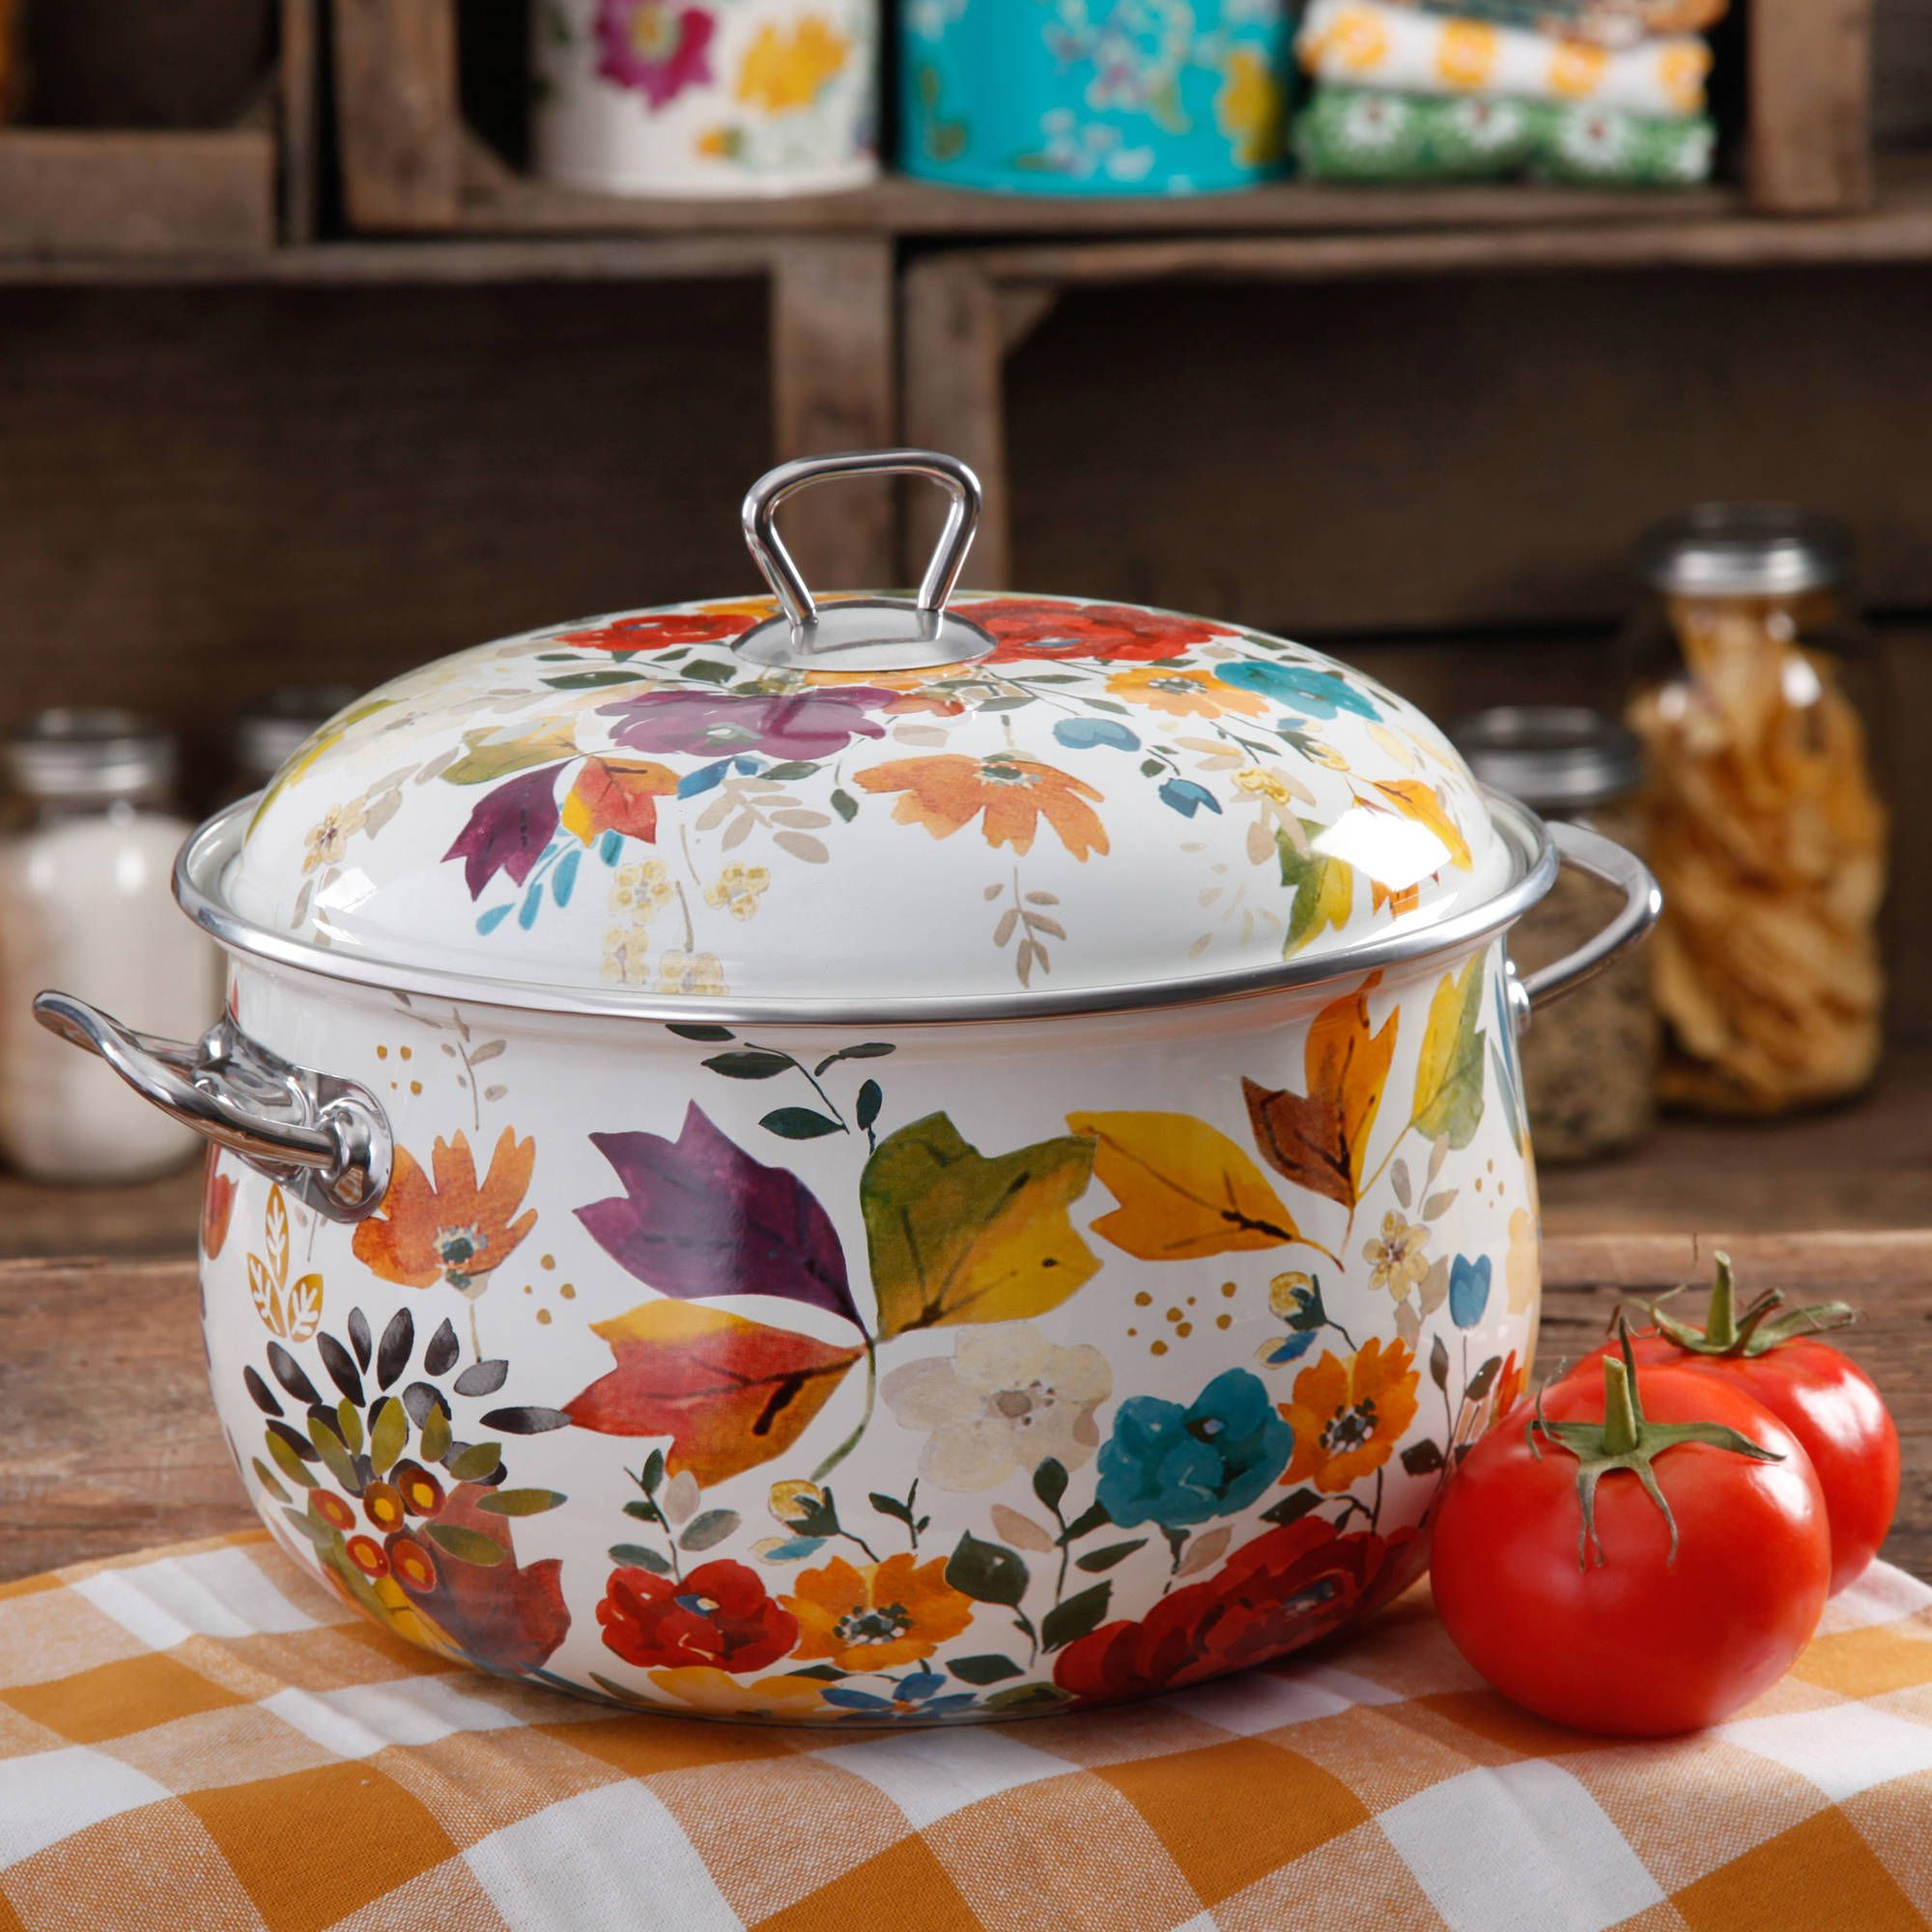 The Pioneer Woman 4-Quart Timeless Floral Casserole With